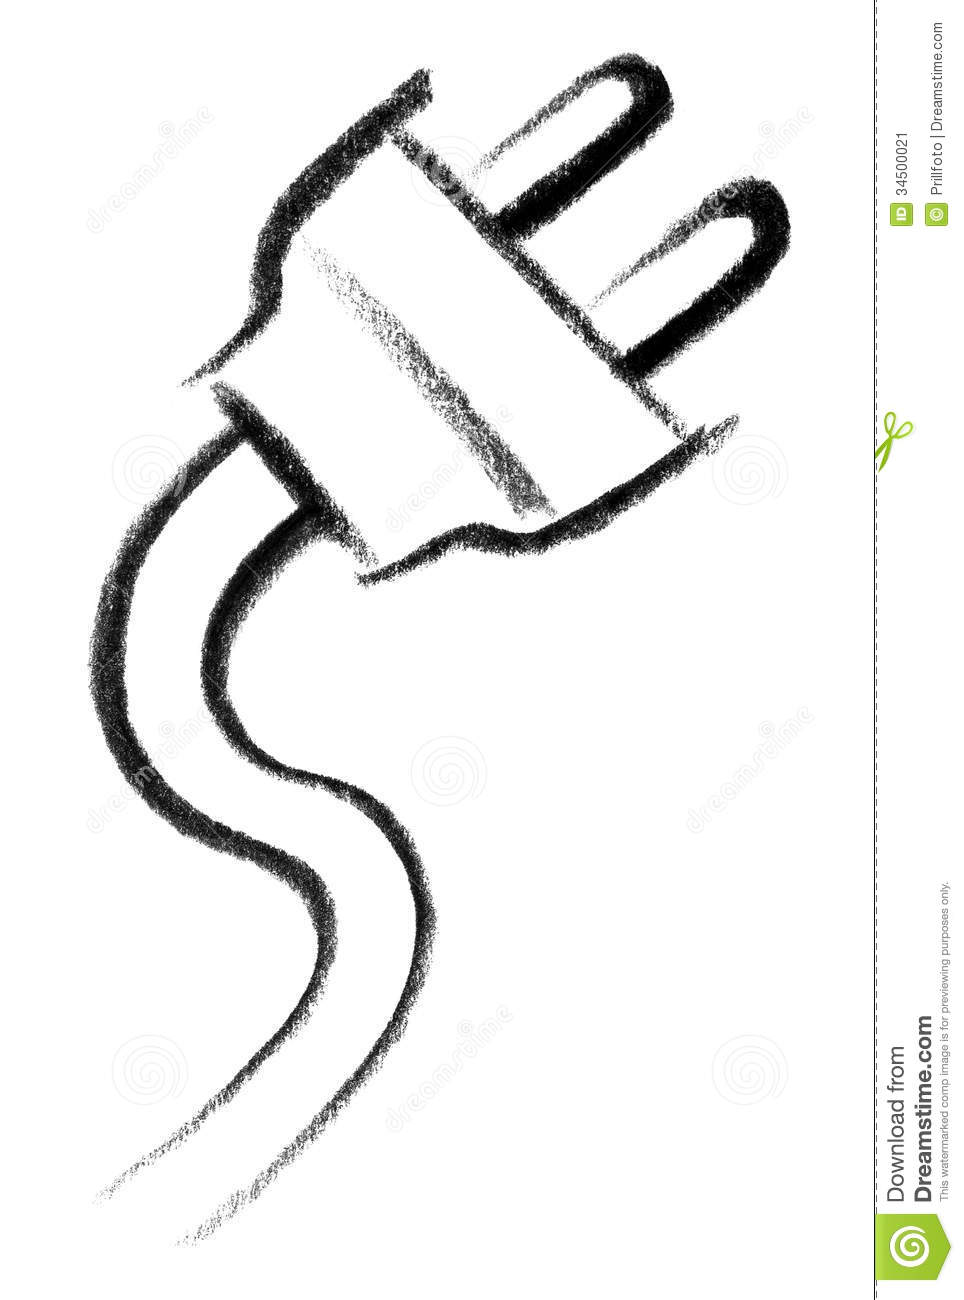 Plug icon stock illustration. Illustration of cord